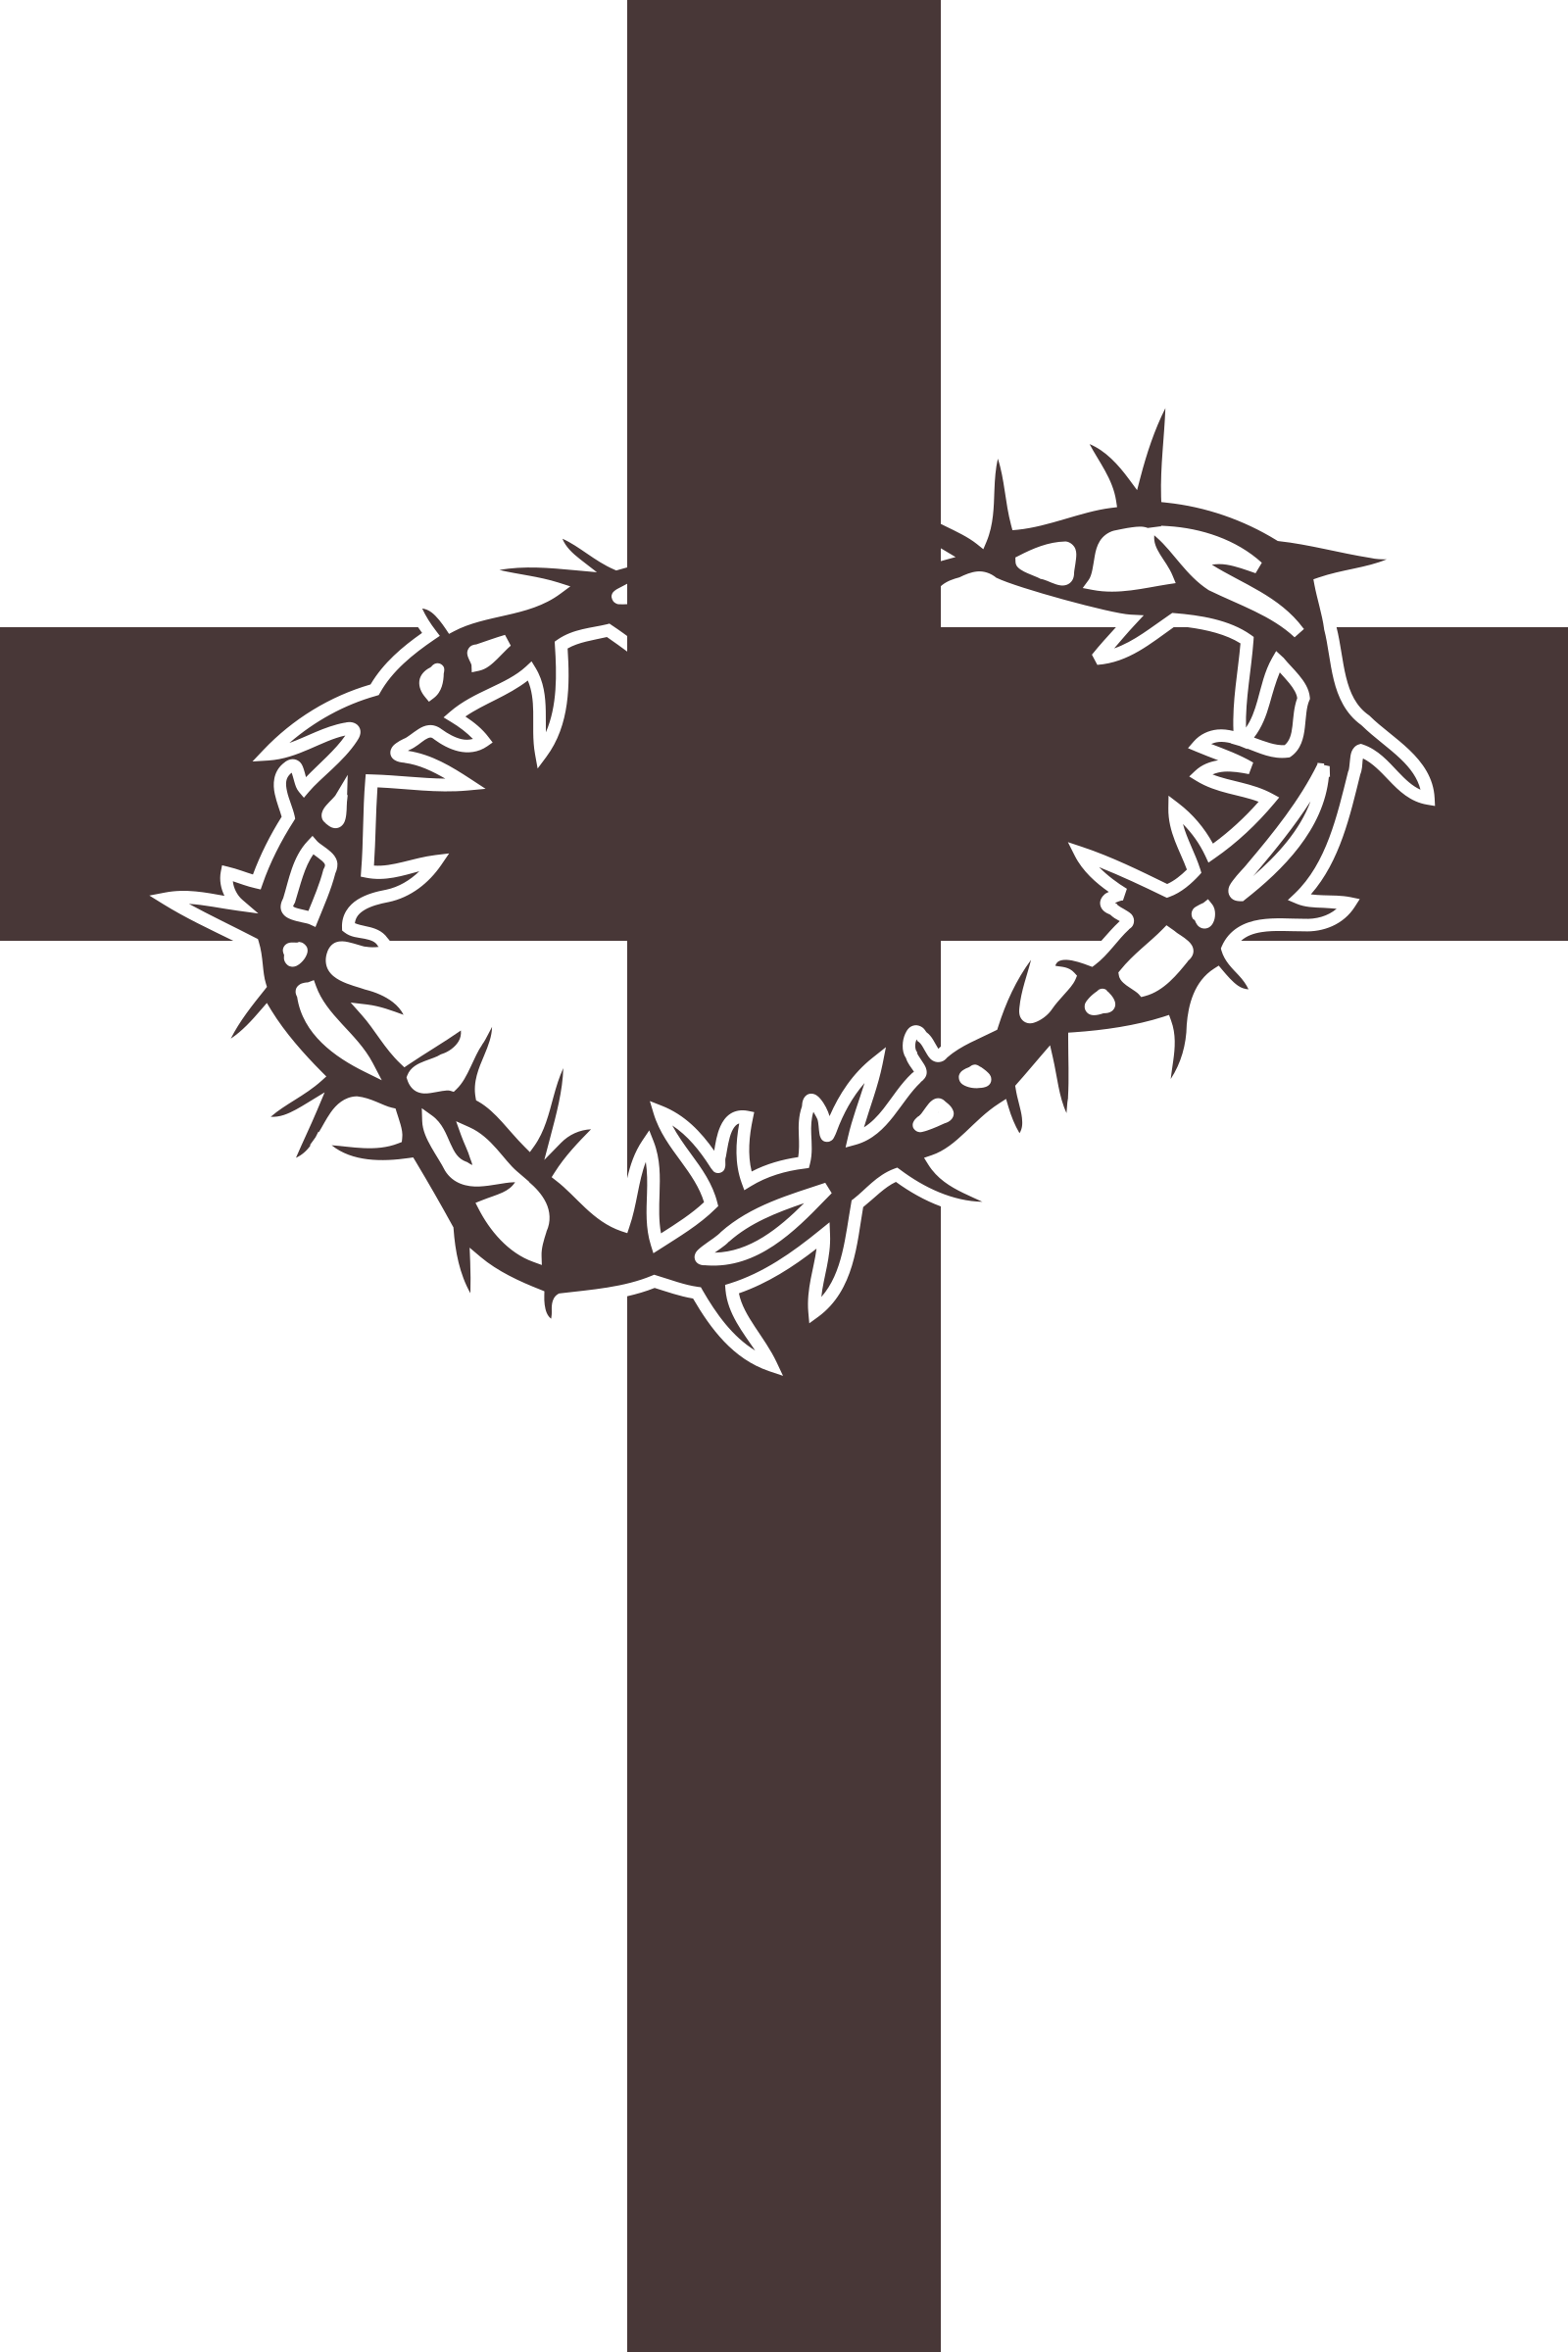 graphic freeuse download Cross clipart. And thorns icon big.